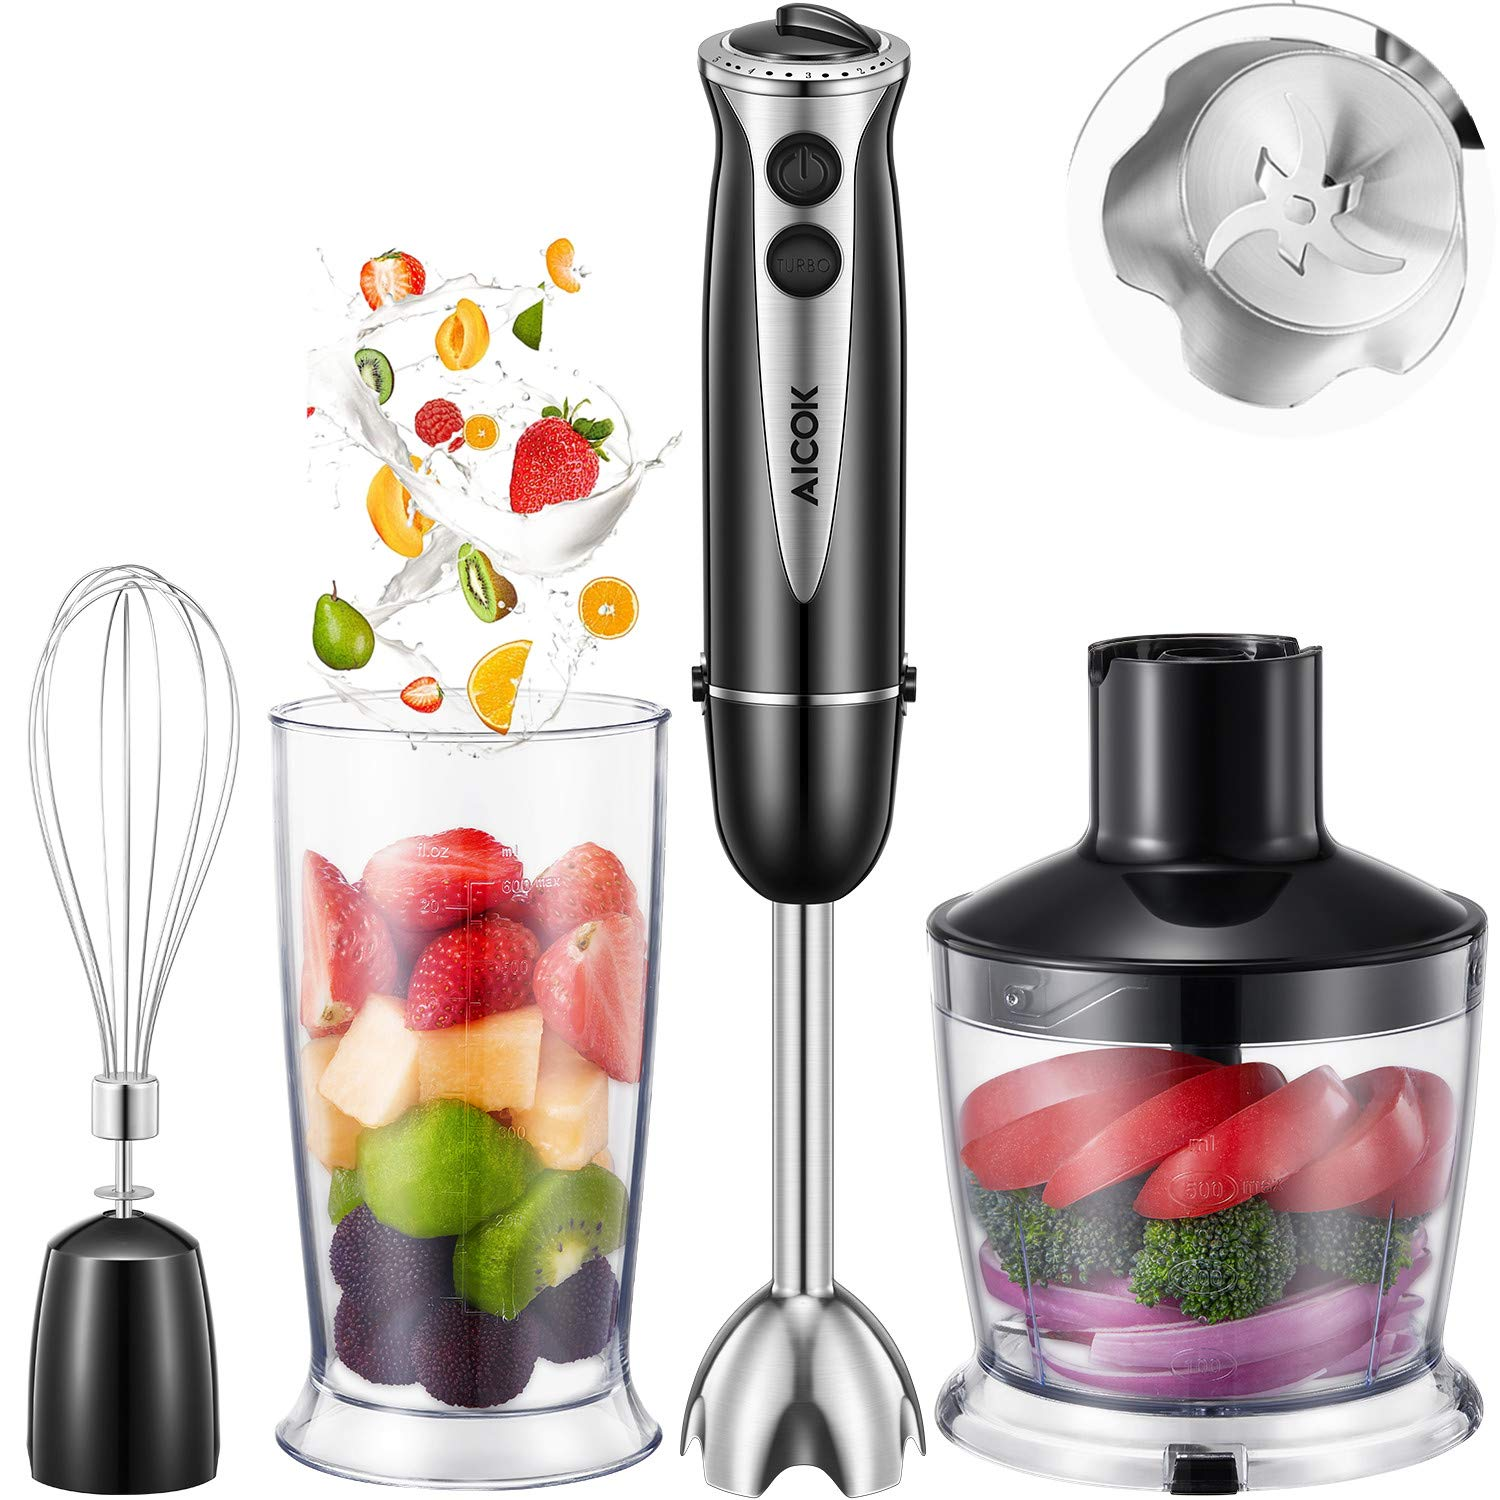 Aicok 4 in 1 Multi-Purpose Immersion Blender, 10-Speed Hand Blender with 6-Leaf Stainless Steel blades for Baby Food, Juices, Sauces and Soup, Includes BPA-Free Food Chopper / Egg Whisk / Beaker by AICOK